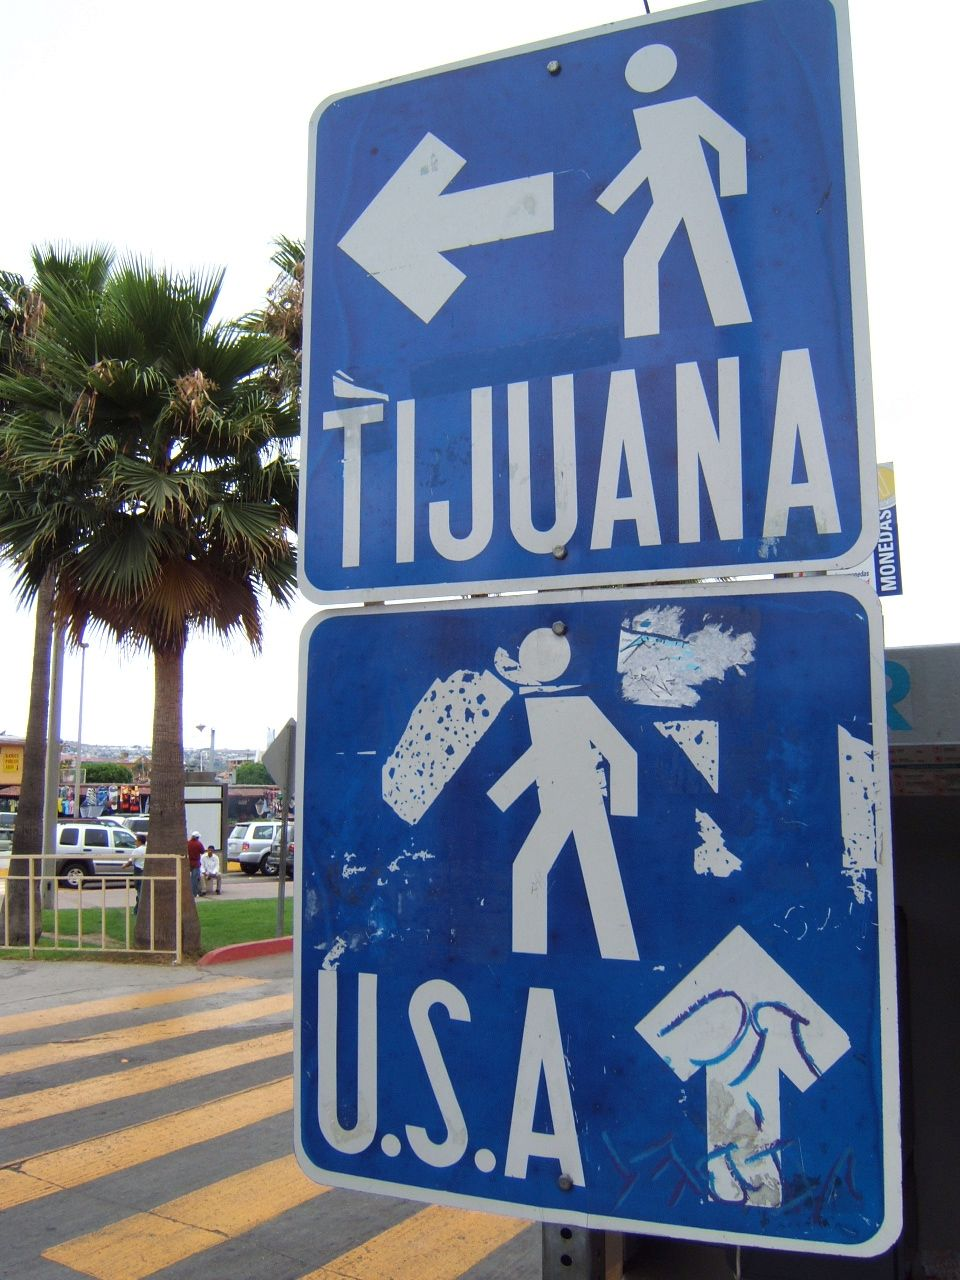 Pedestrian_border_crossing_sign_Tijuana_Mexico_US